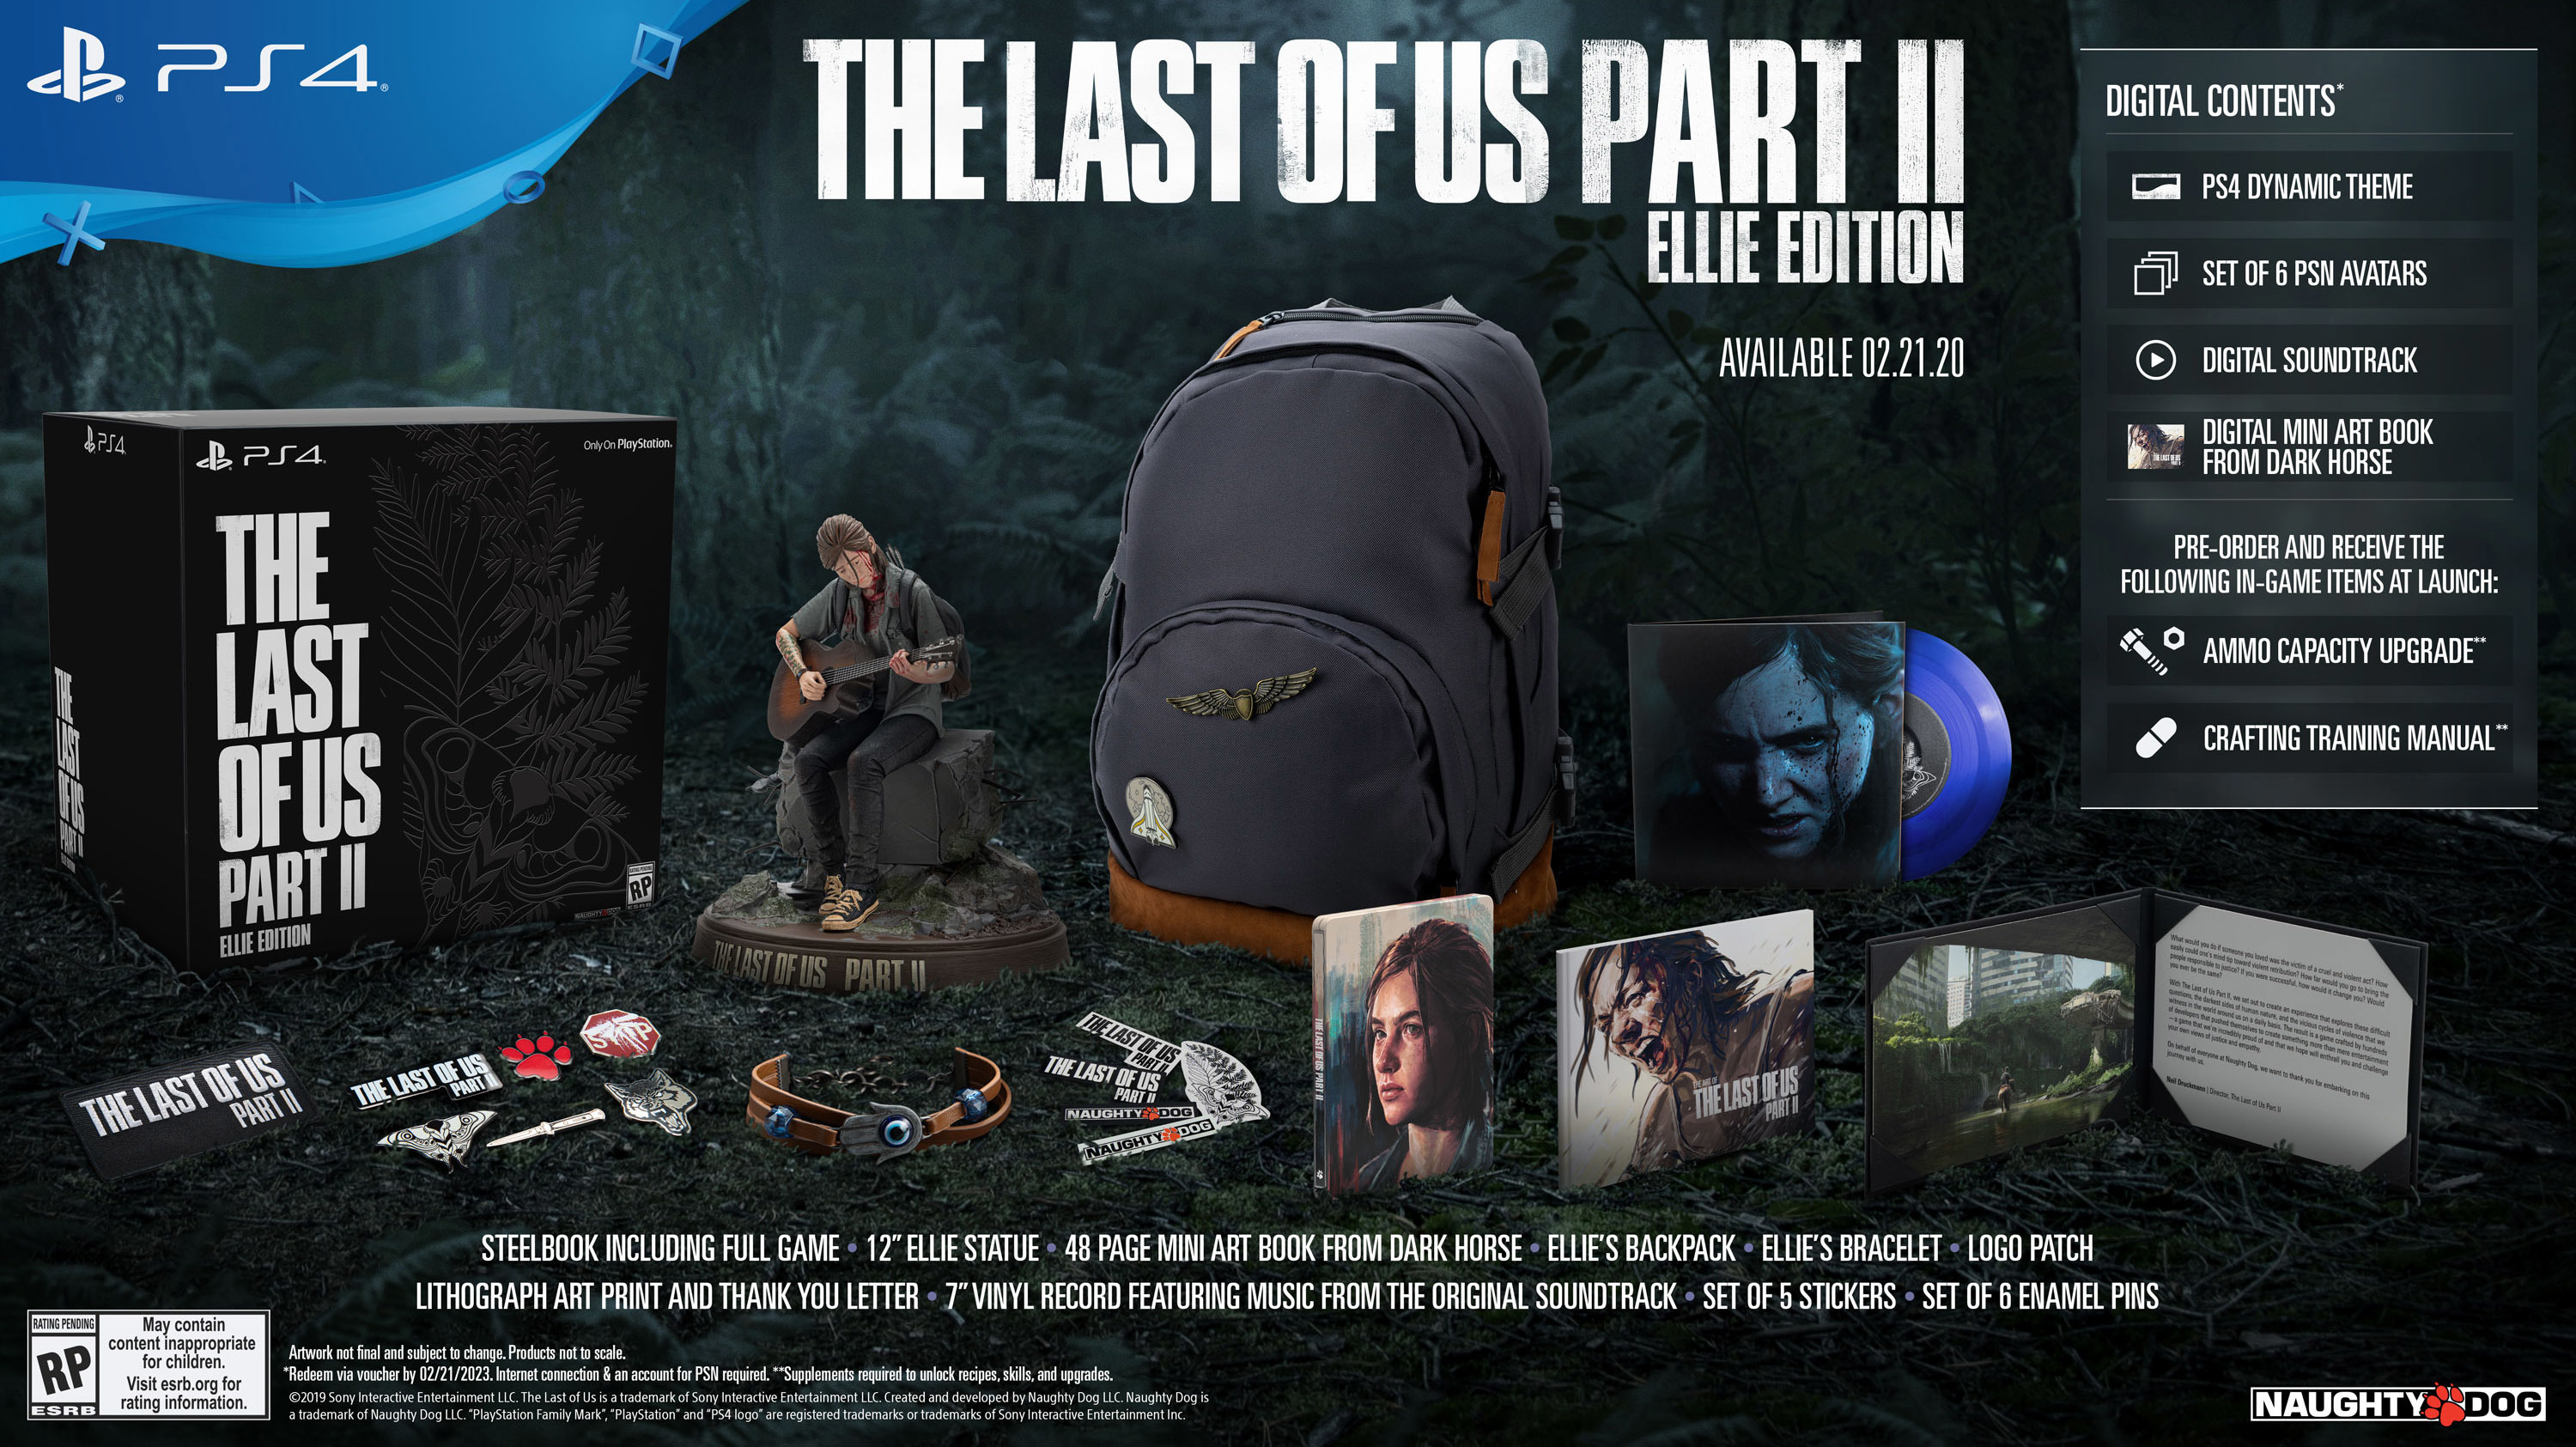 The Last of Us Part II Arrives May 29, 2020 - Image 2